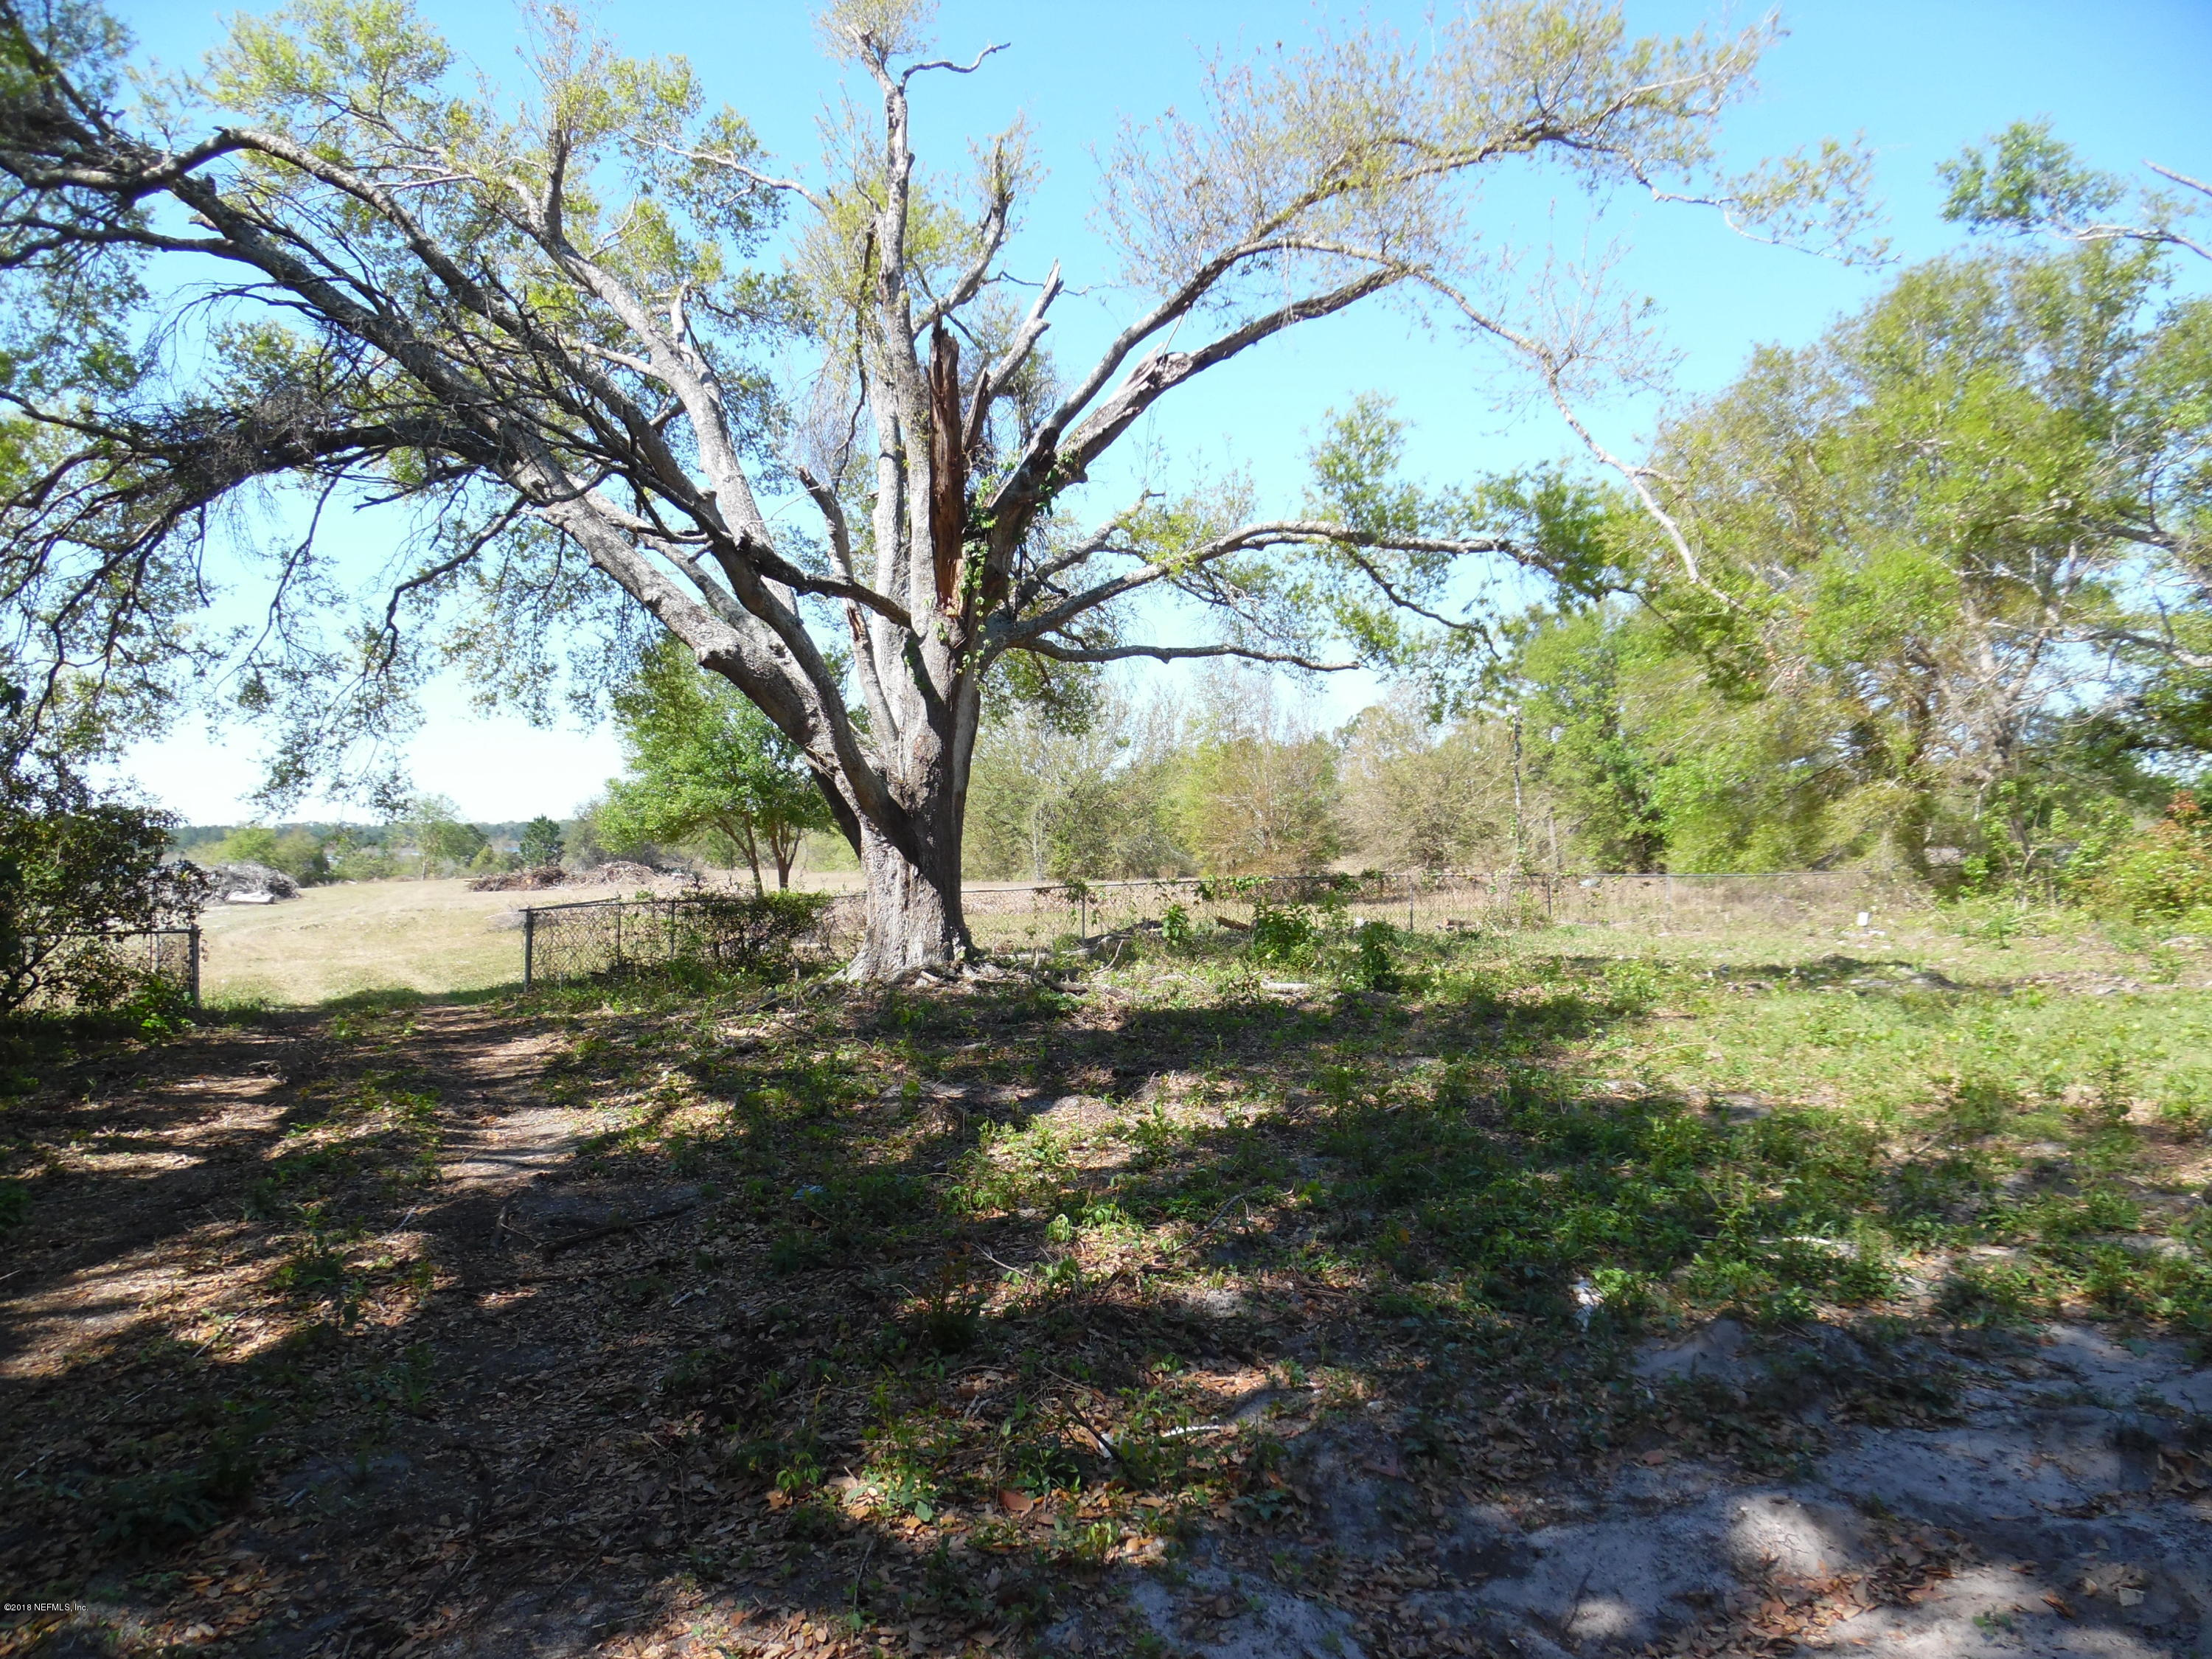 7982 FL-100, KEYSTONE HEIGHTS, FLORIDA 32656, ,Vacant land,For sale,FL-100,929352